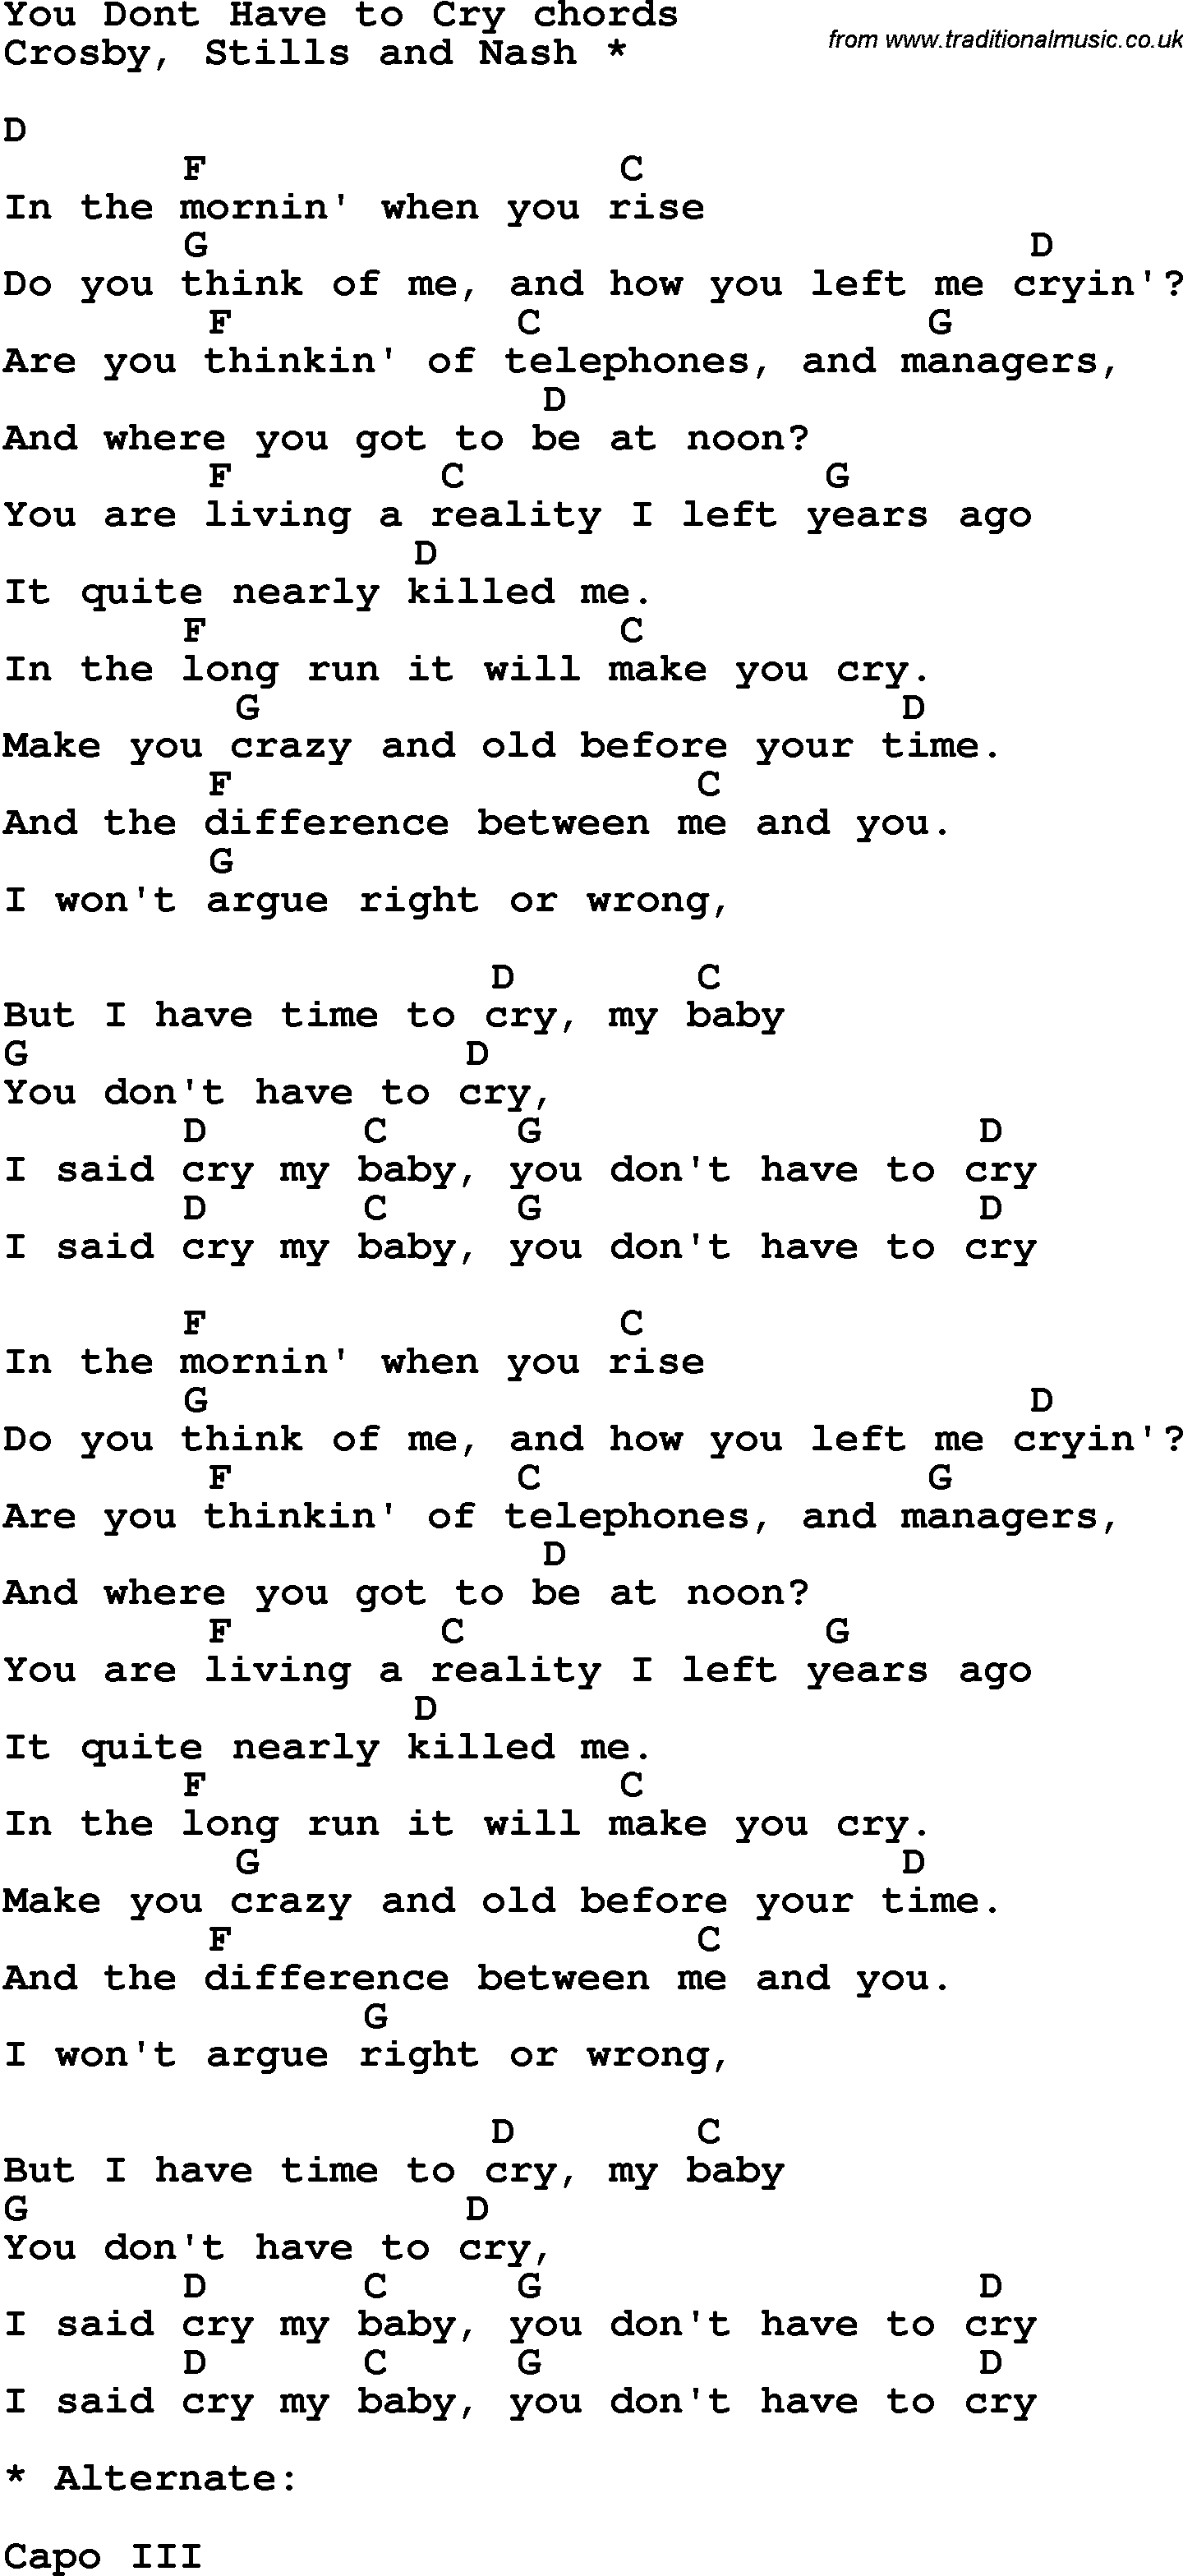 Song Lyrics With Guitar Chords For You Dont Haveto Cry